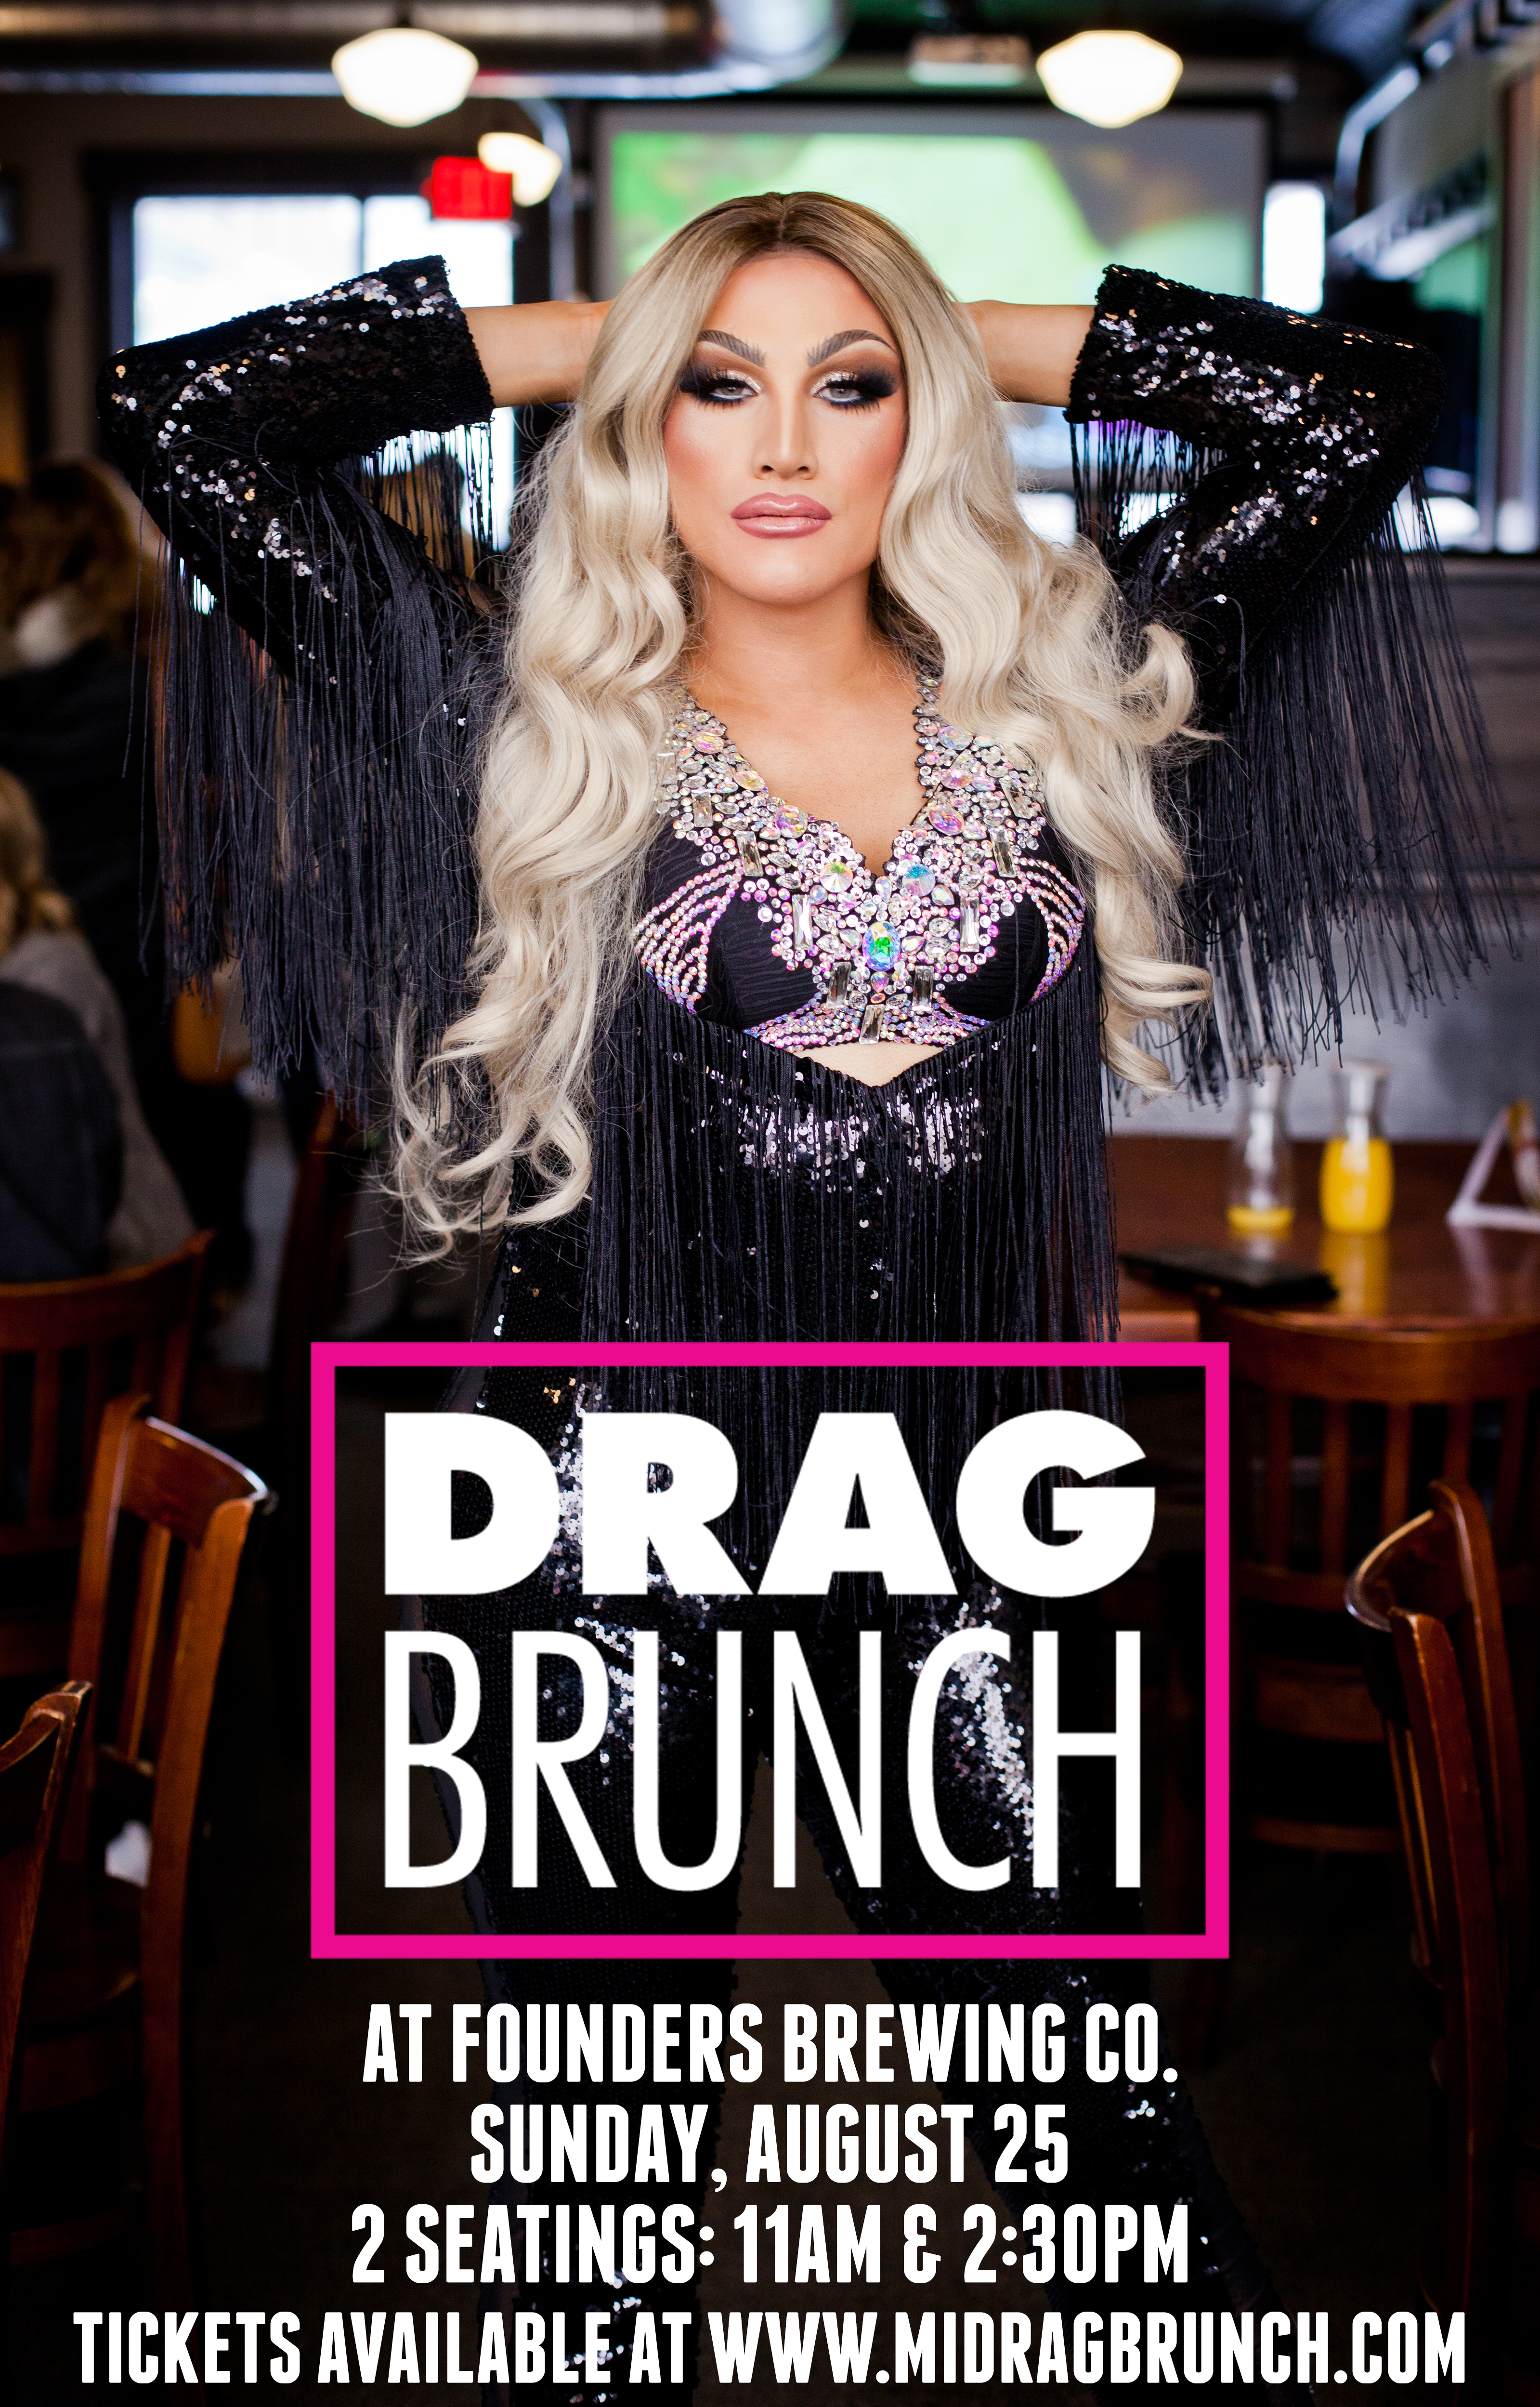 Drag Brunch event poster hosted by Founders Brewing Co.